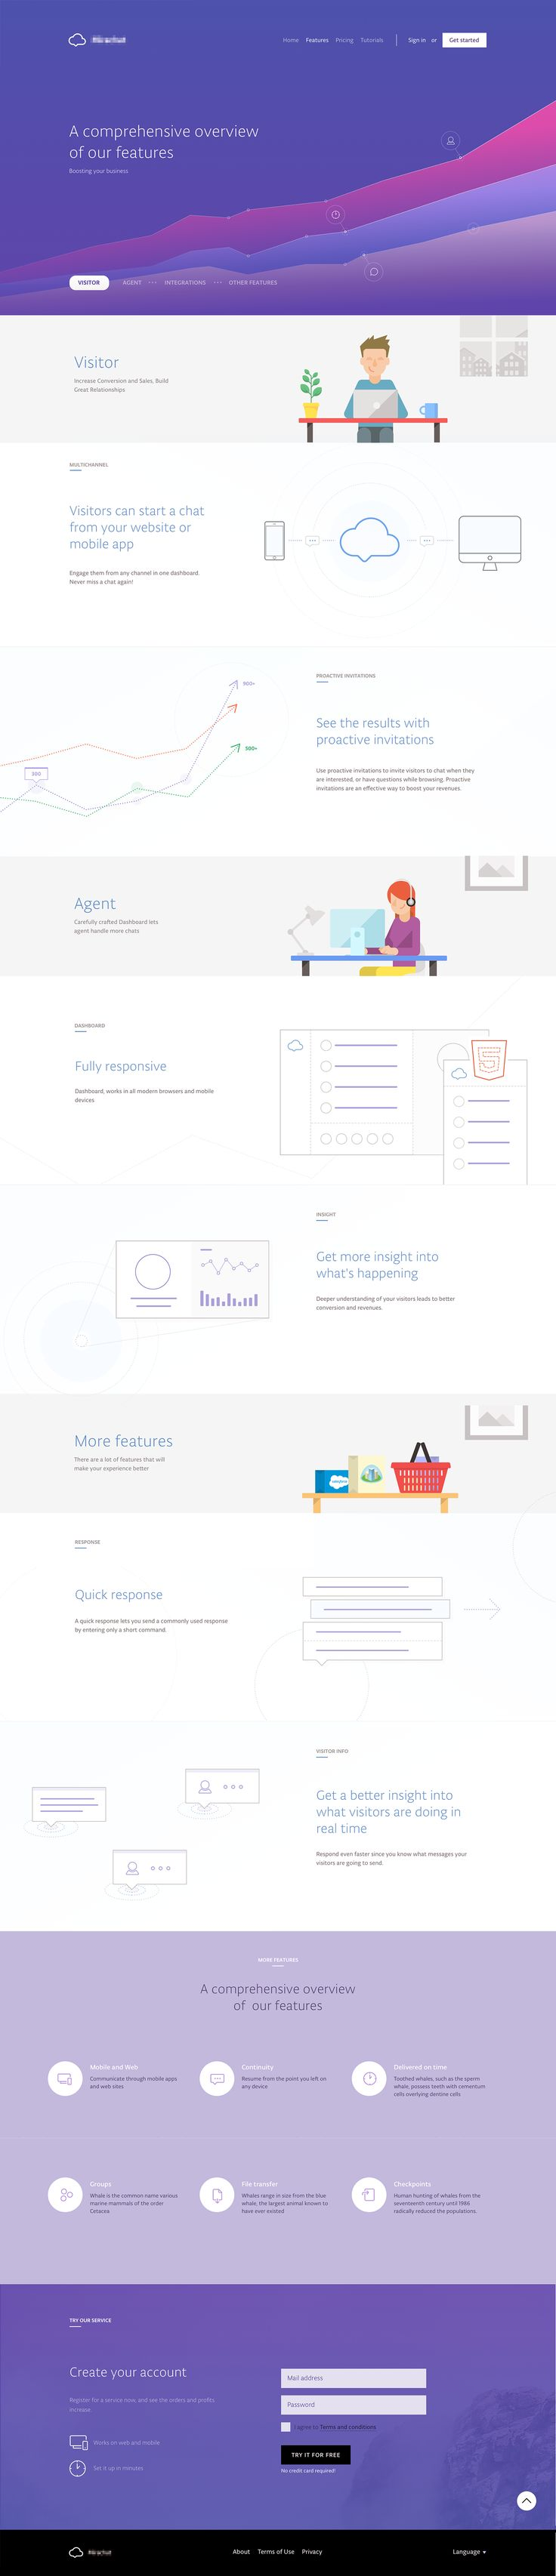 Features dribbble